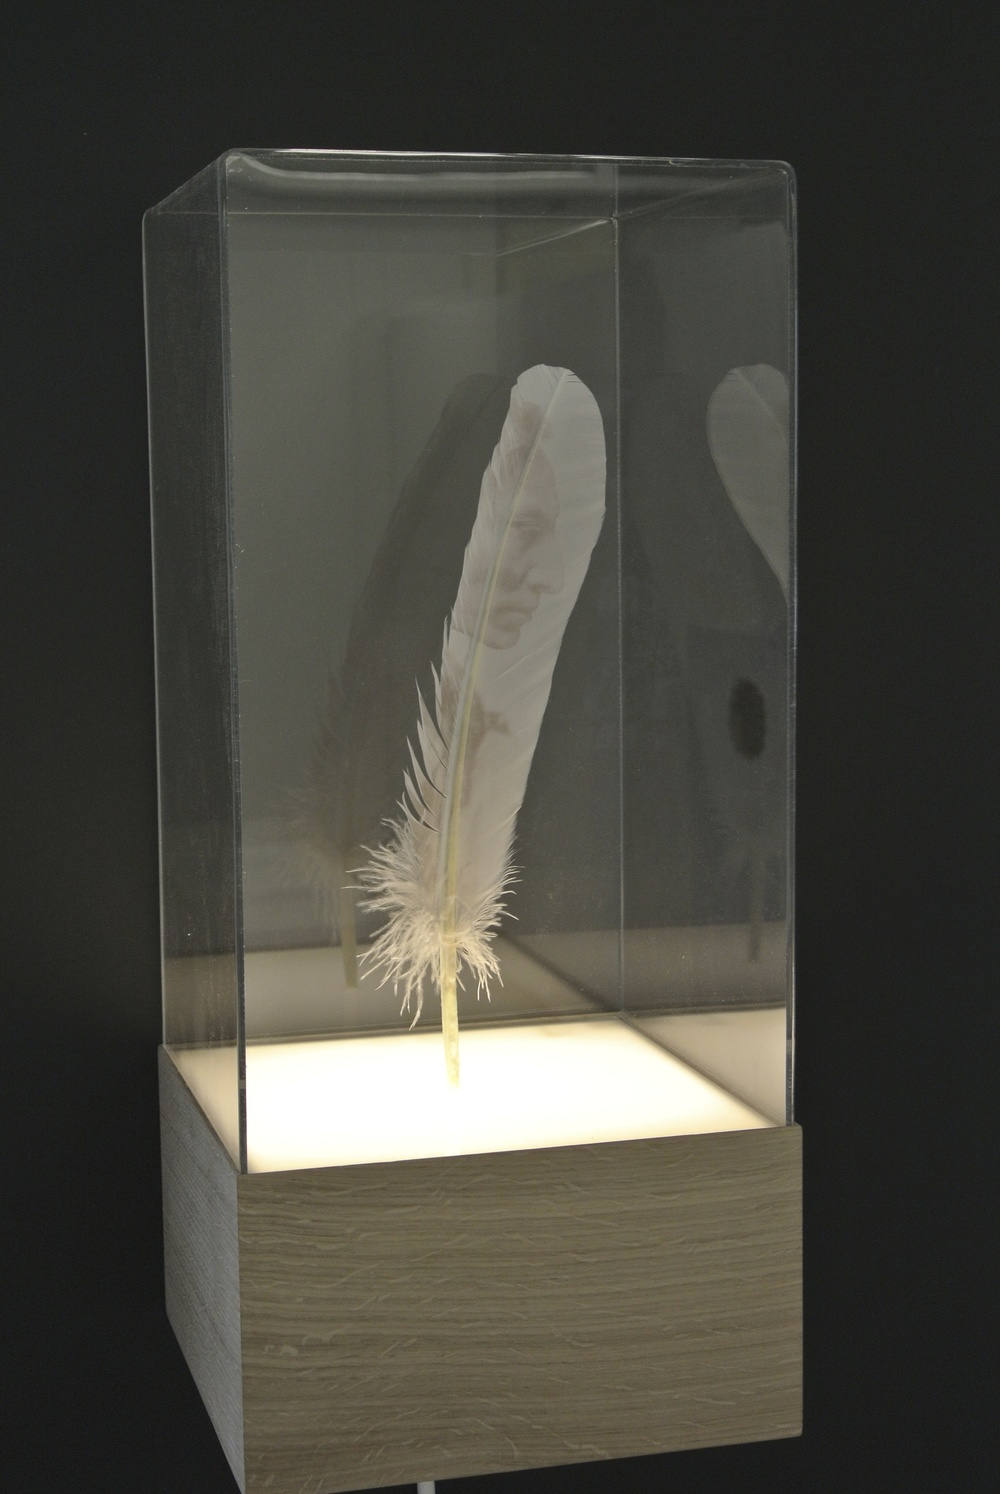 Lone Feather in light box